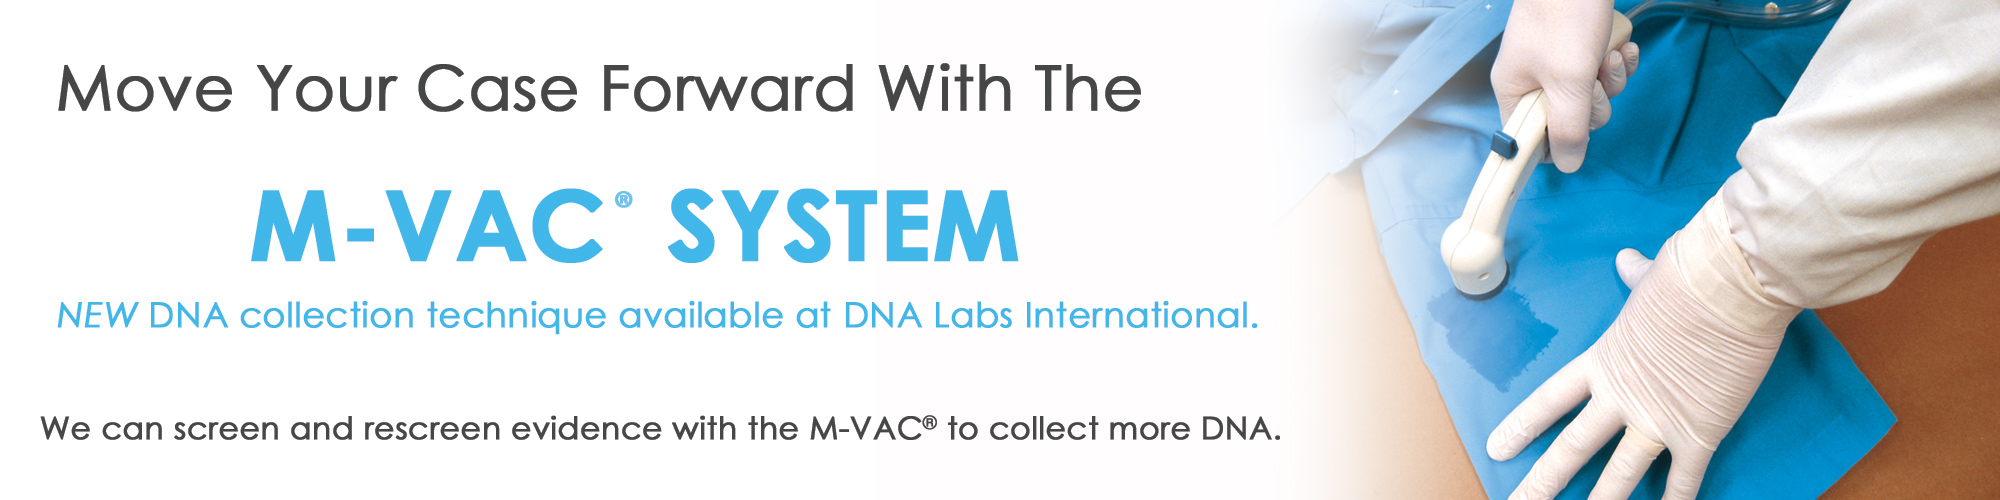 Move your case forward with the M-VAC System